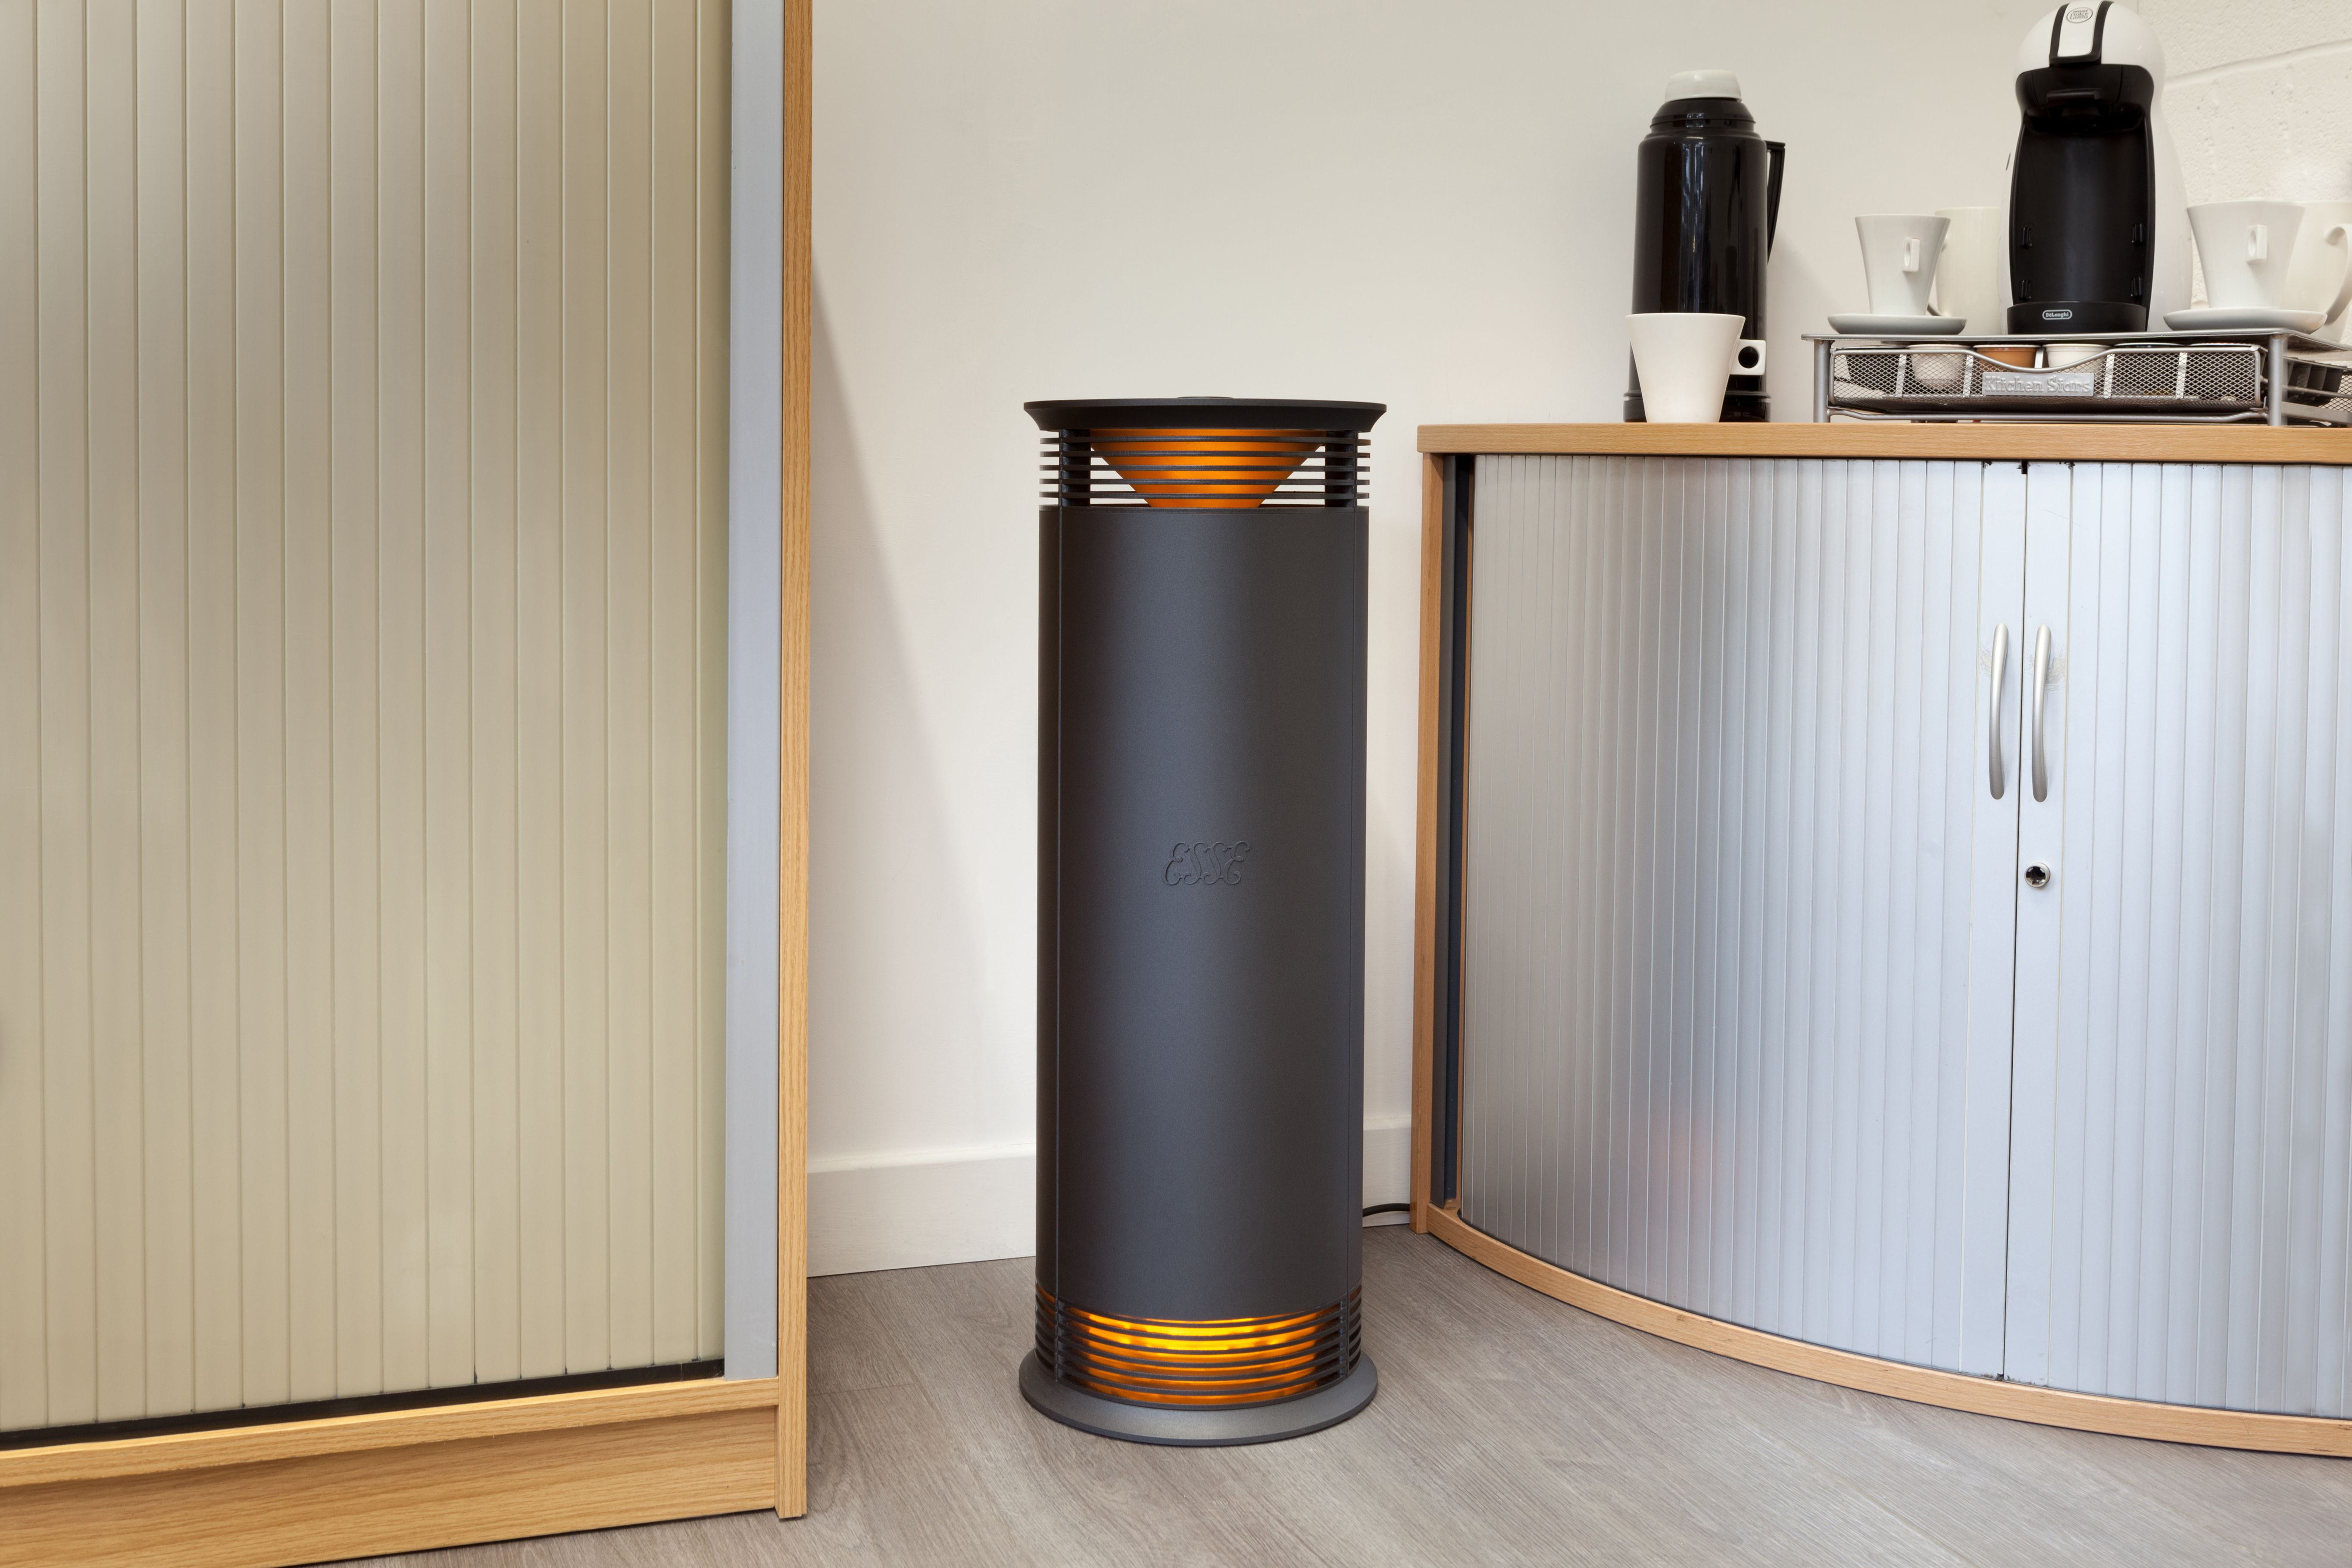 Kaminofen Wamsler Metropolitan Test We Present The Esse Vector Portable Electric Heater Esse